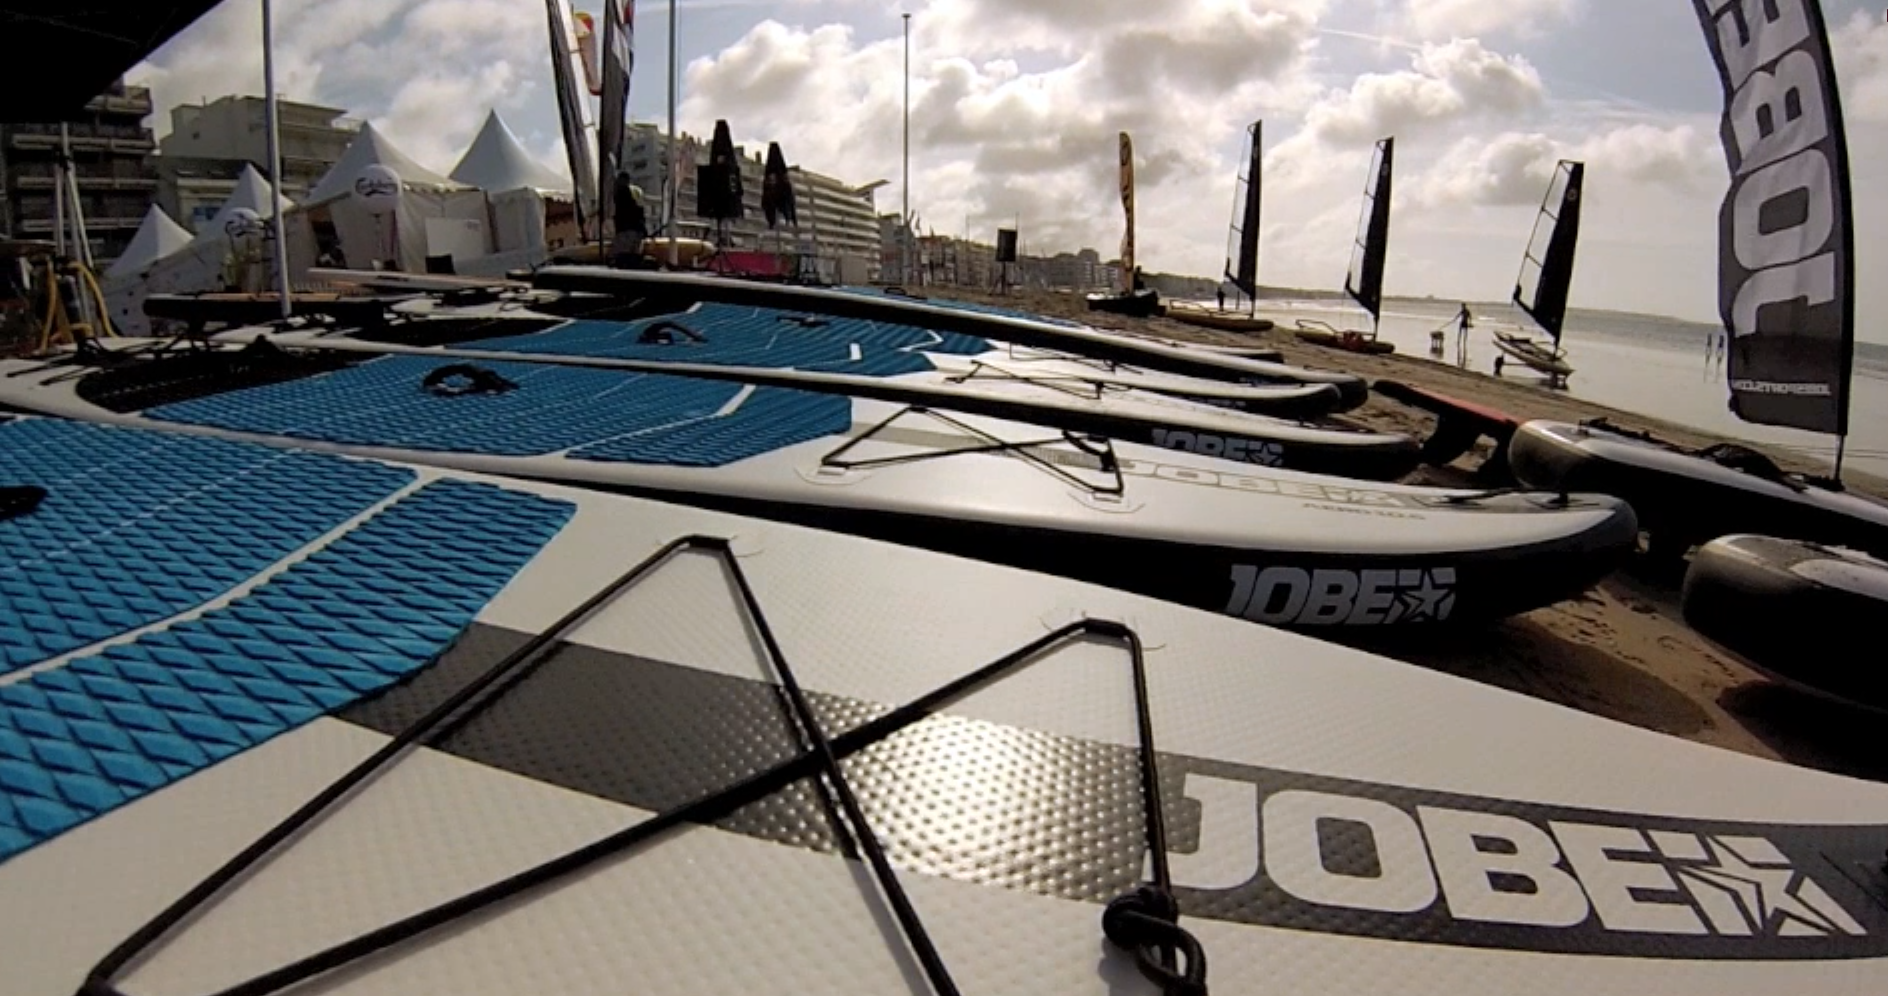 Aftermovie of the Jobe SUP Summer Cup 2015 in France!